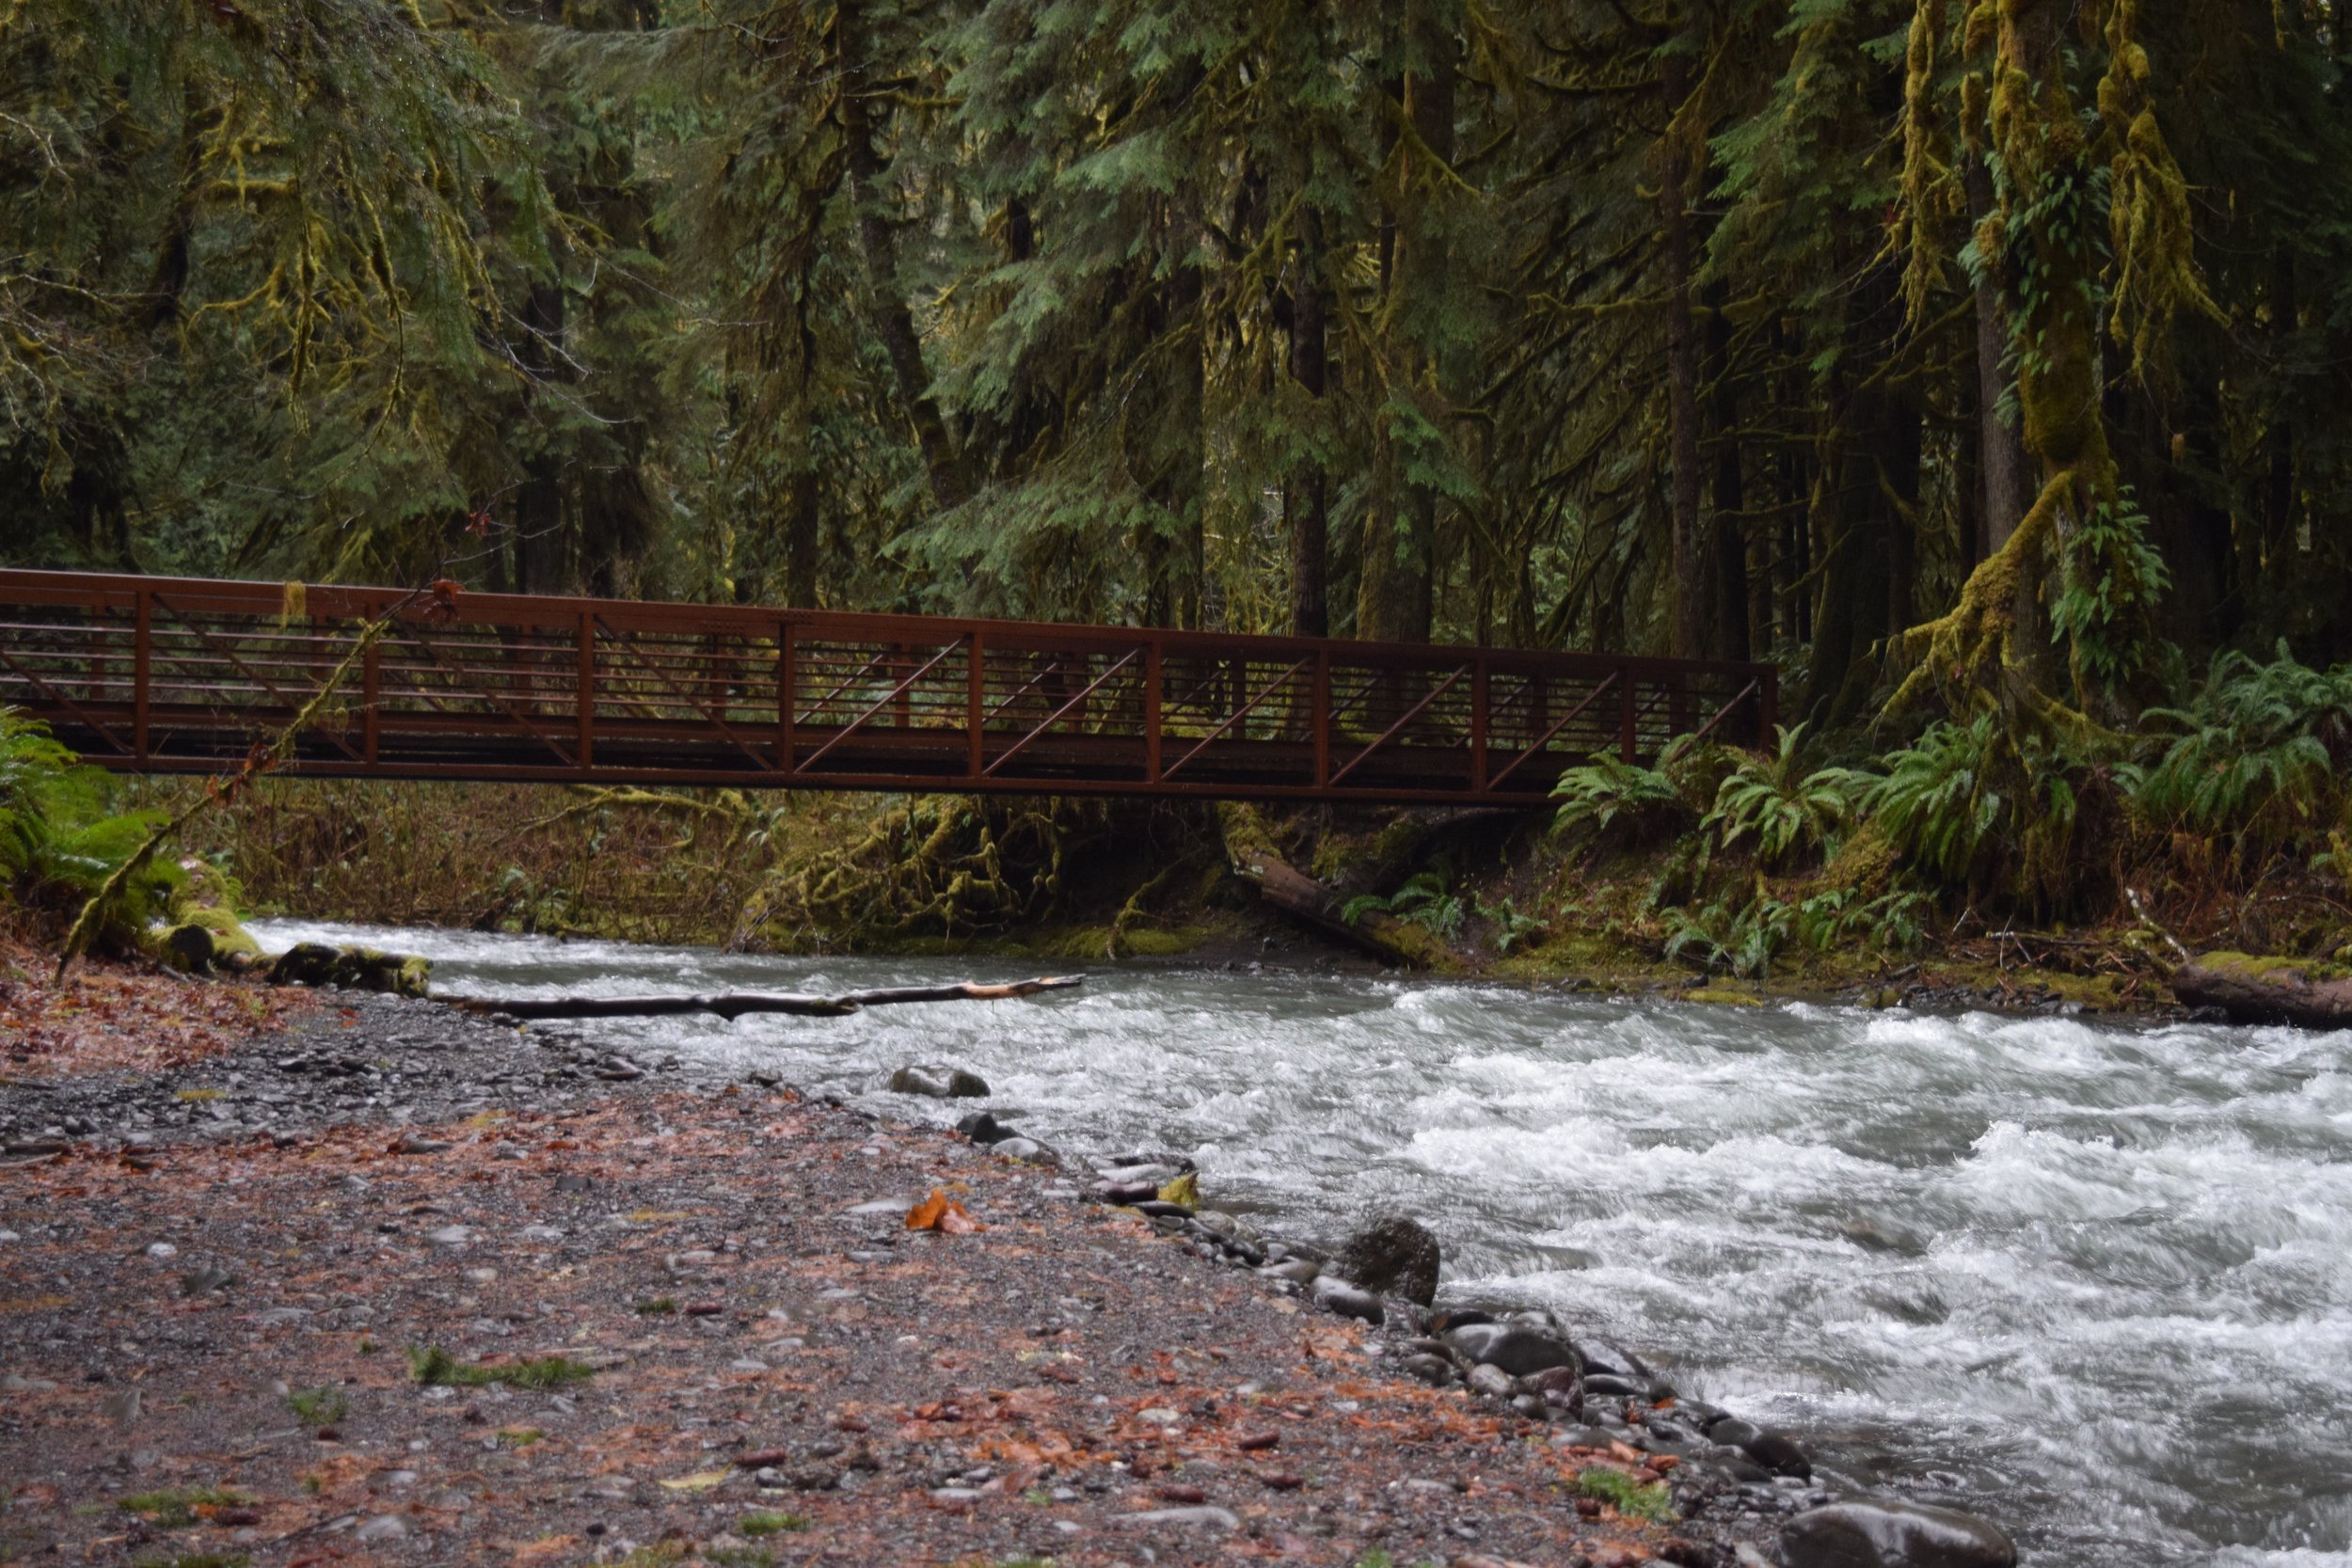 A scenic, forested hike to the falls